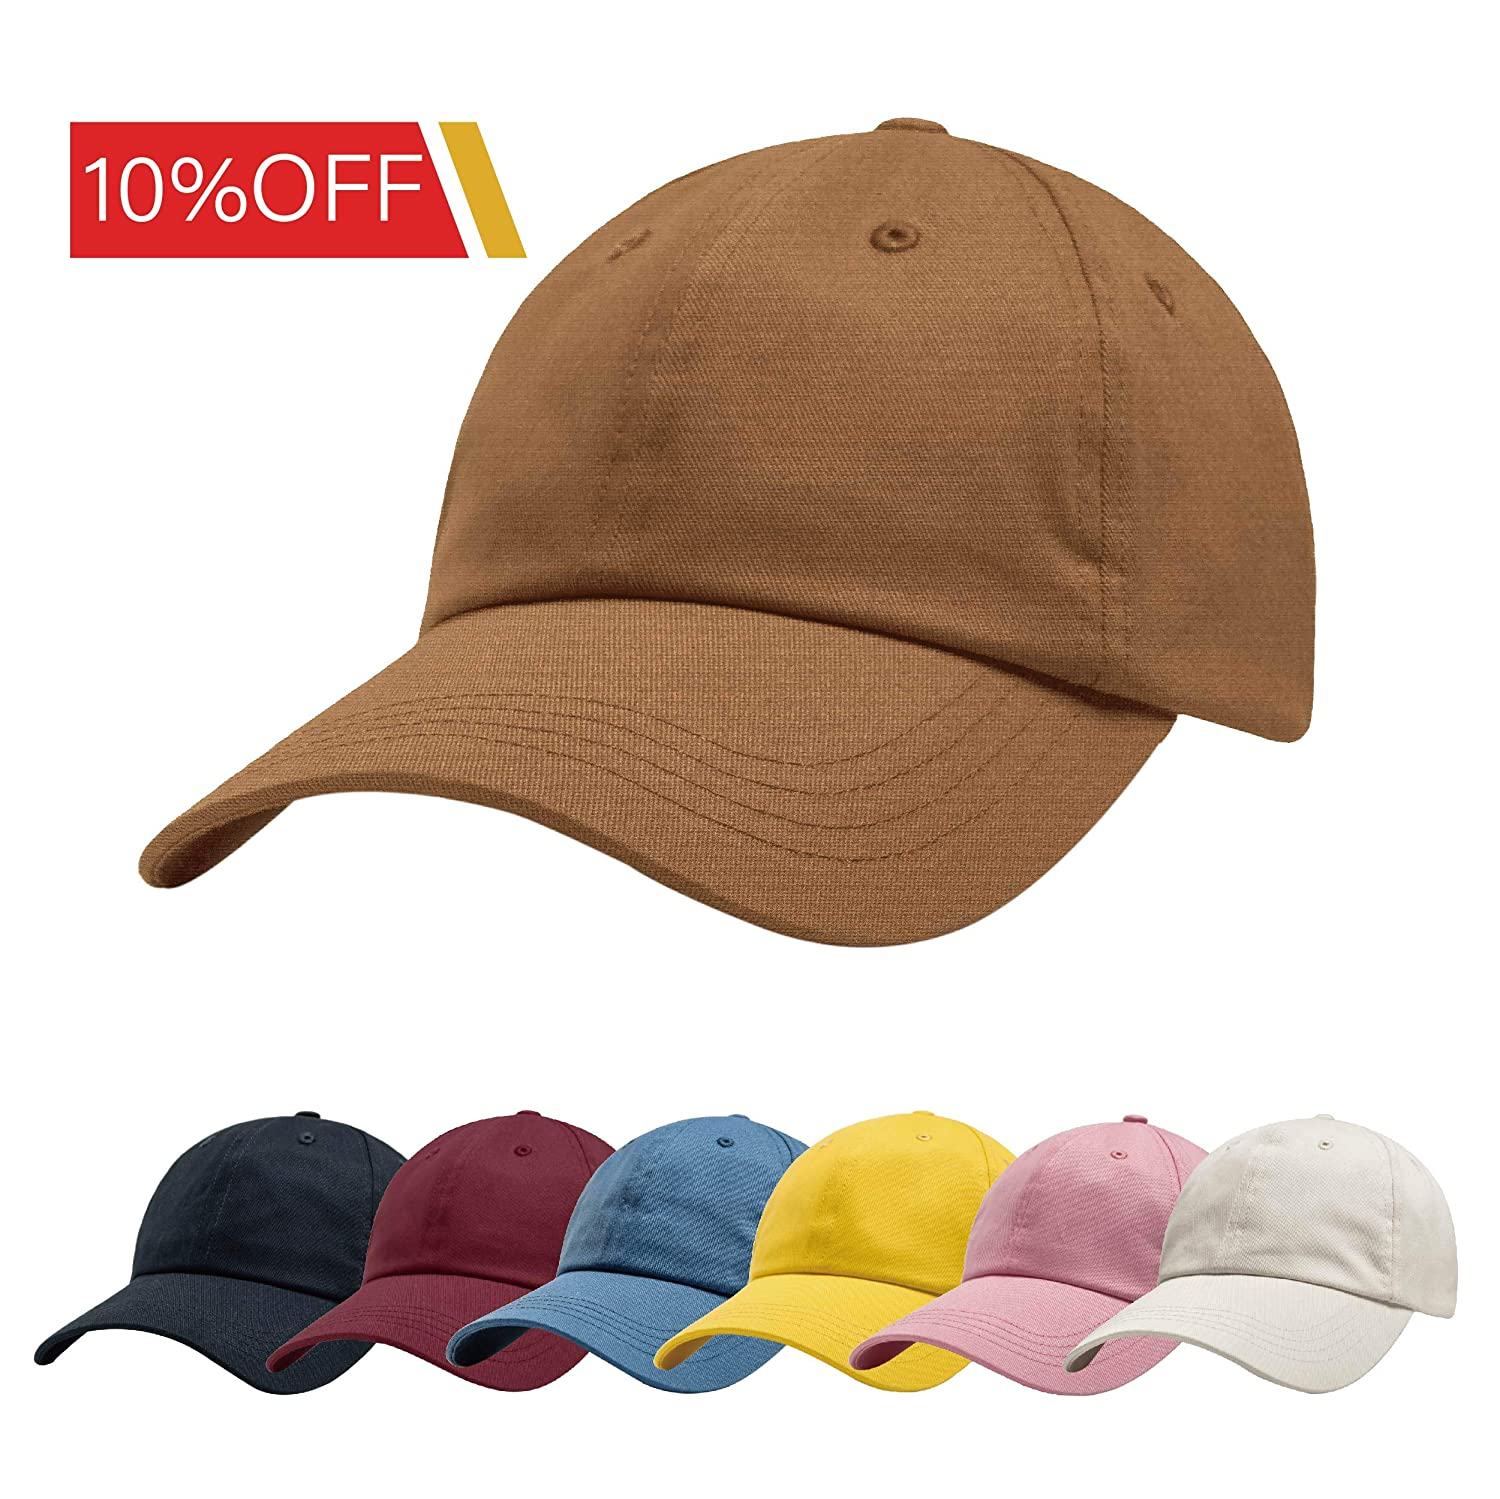 ZOWYA Classic Cotton Plain Baseball Cap-Dad Hat-Polo Cap-Casual Cap-Unisex-Adjustable Size-Unstructured-Soft